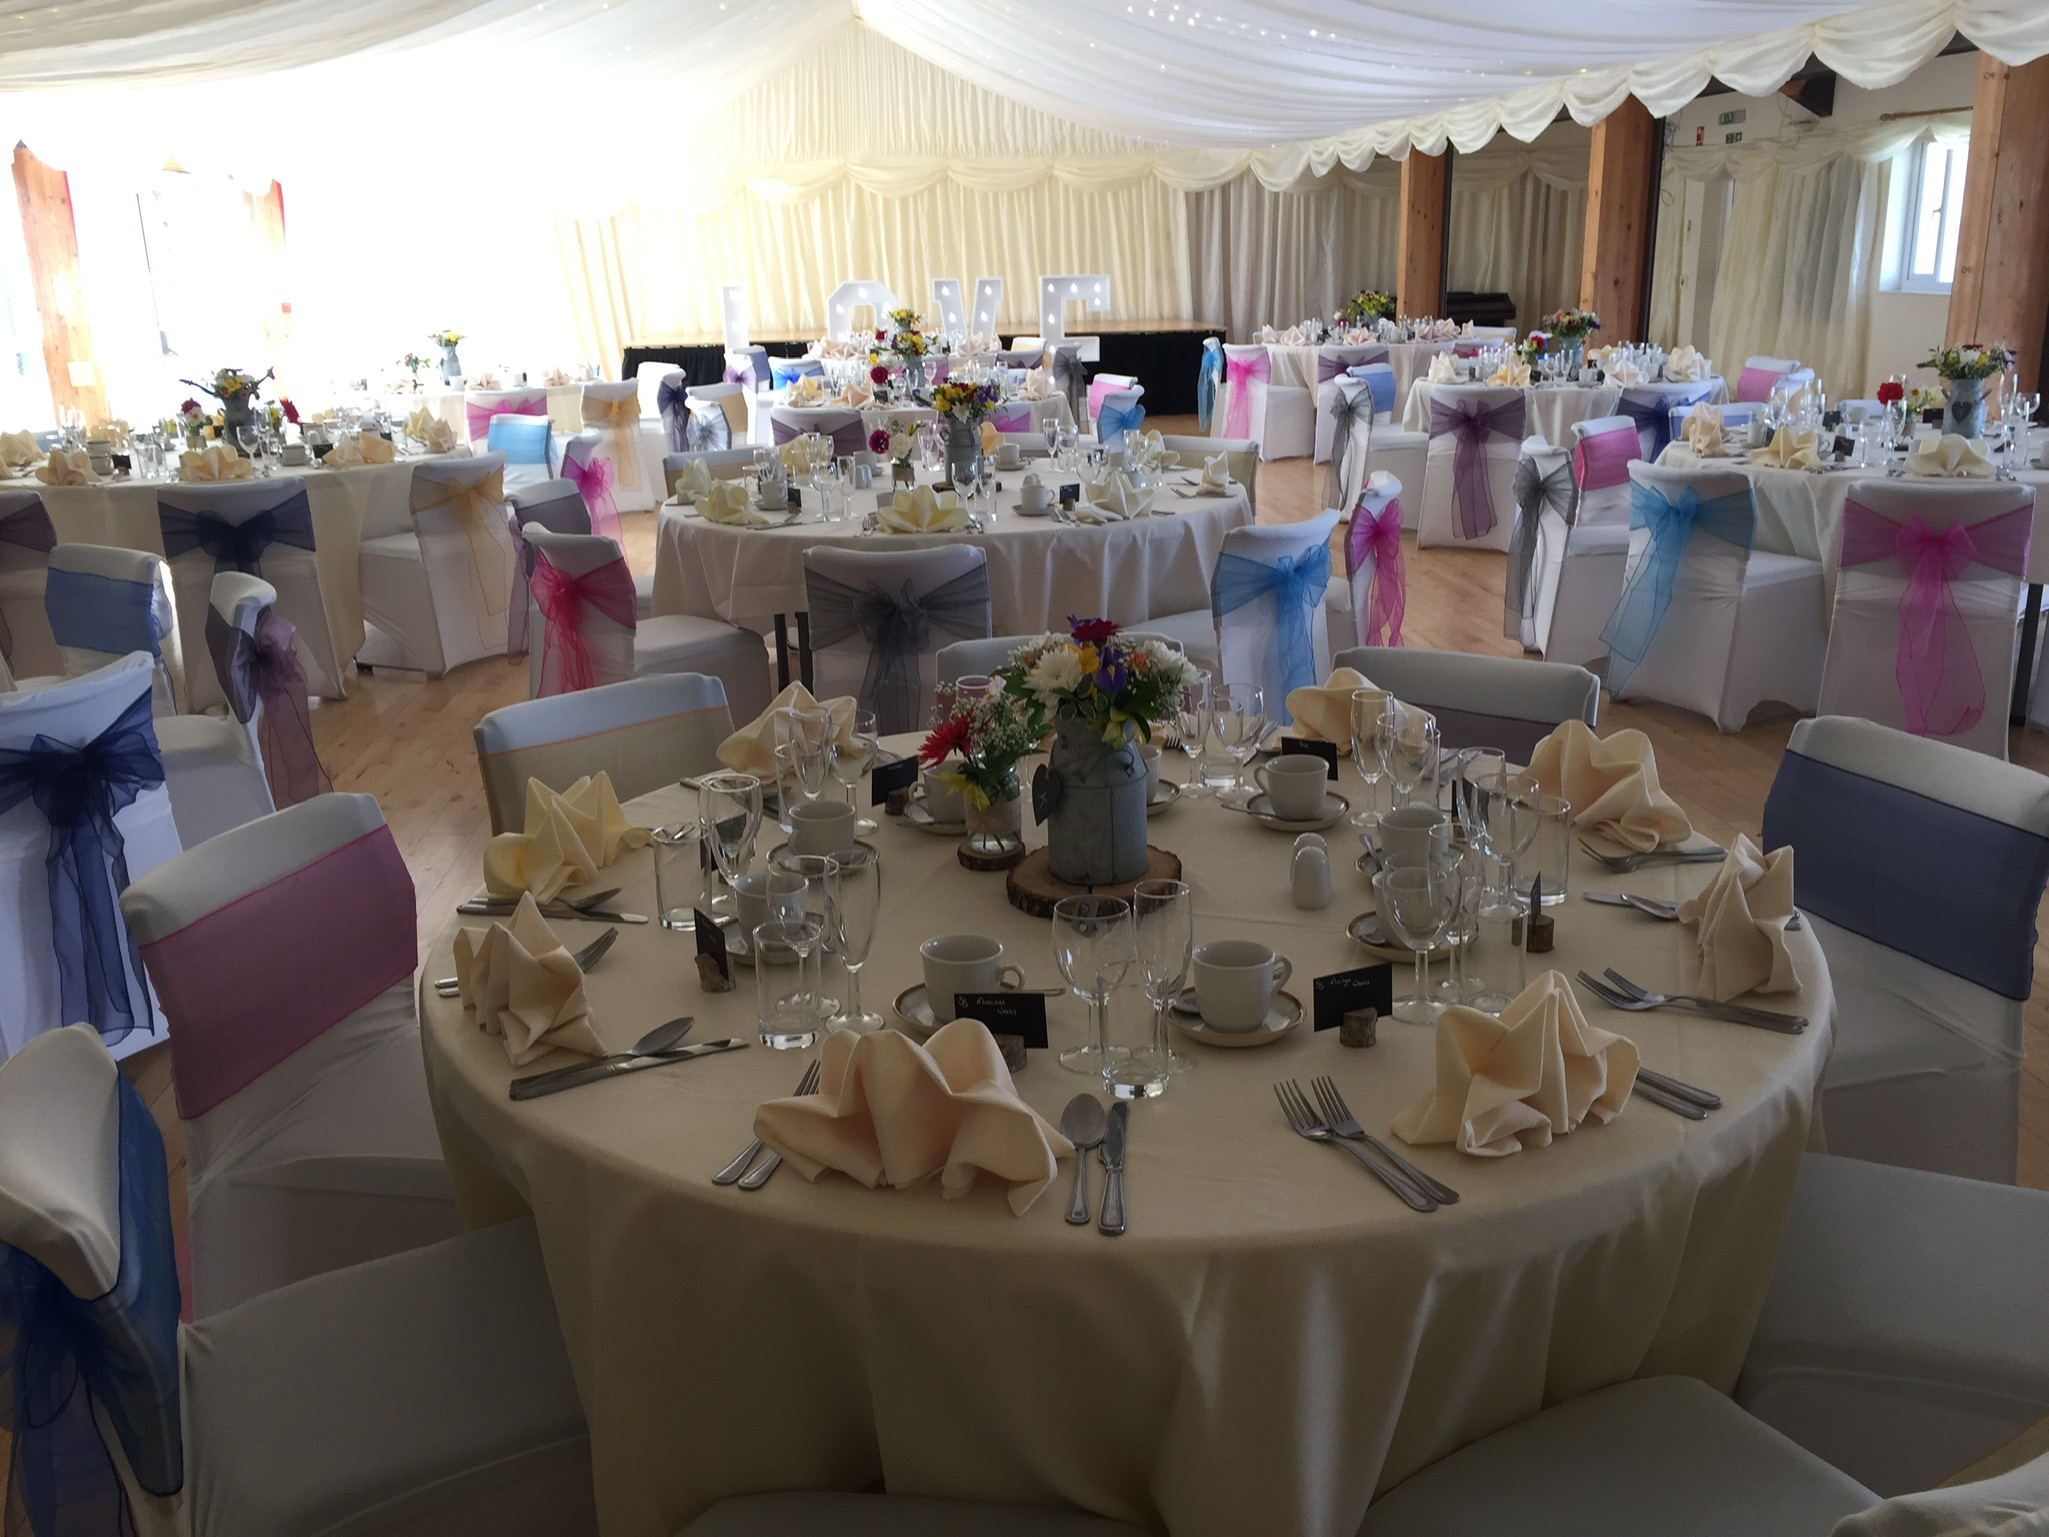 Launcells Barton Wedding Catering